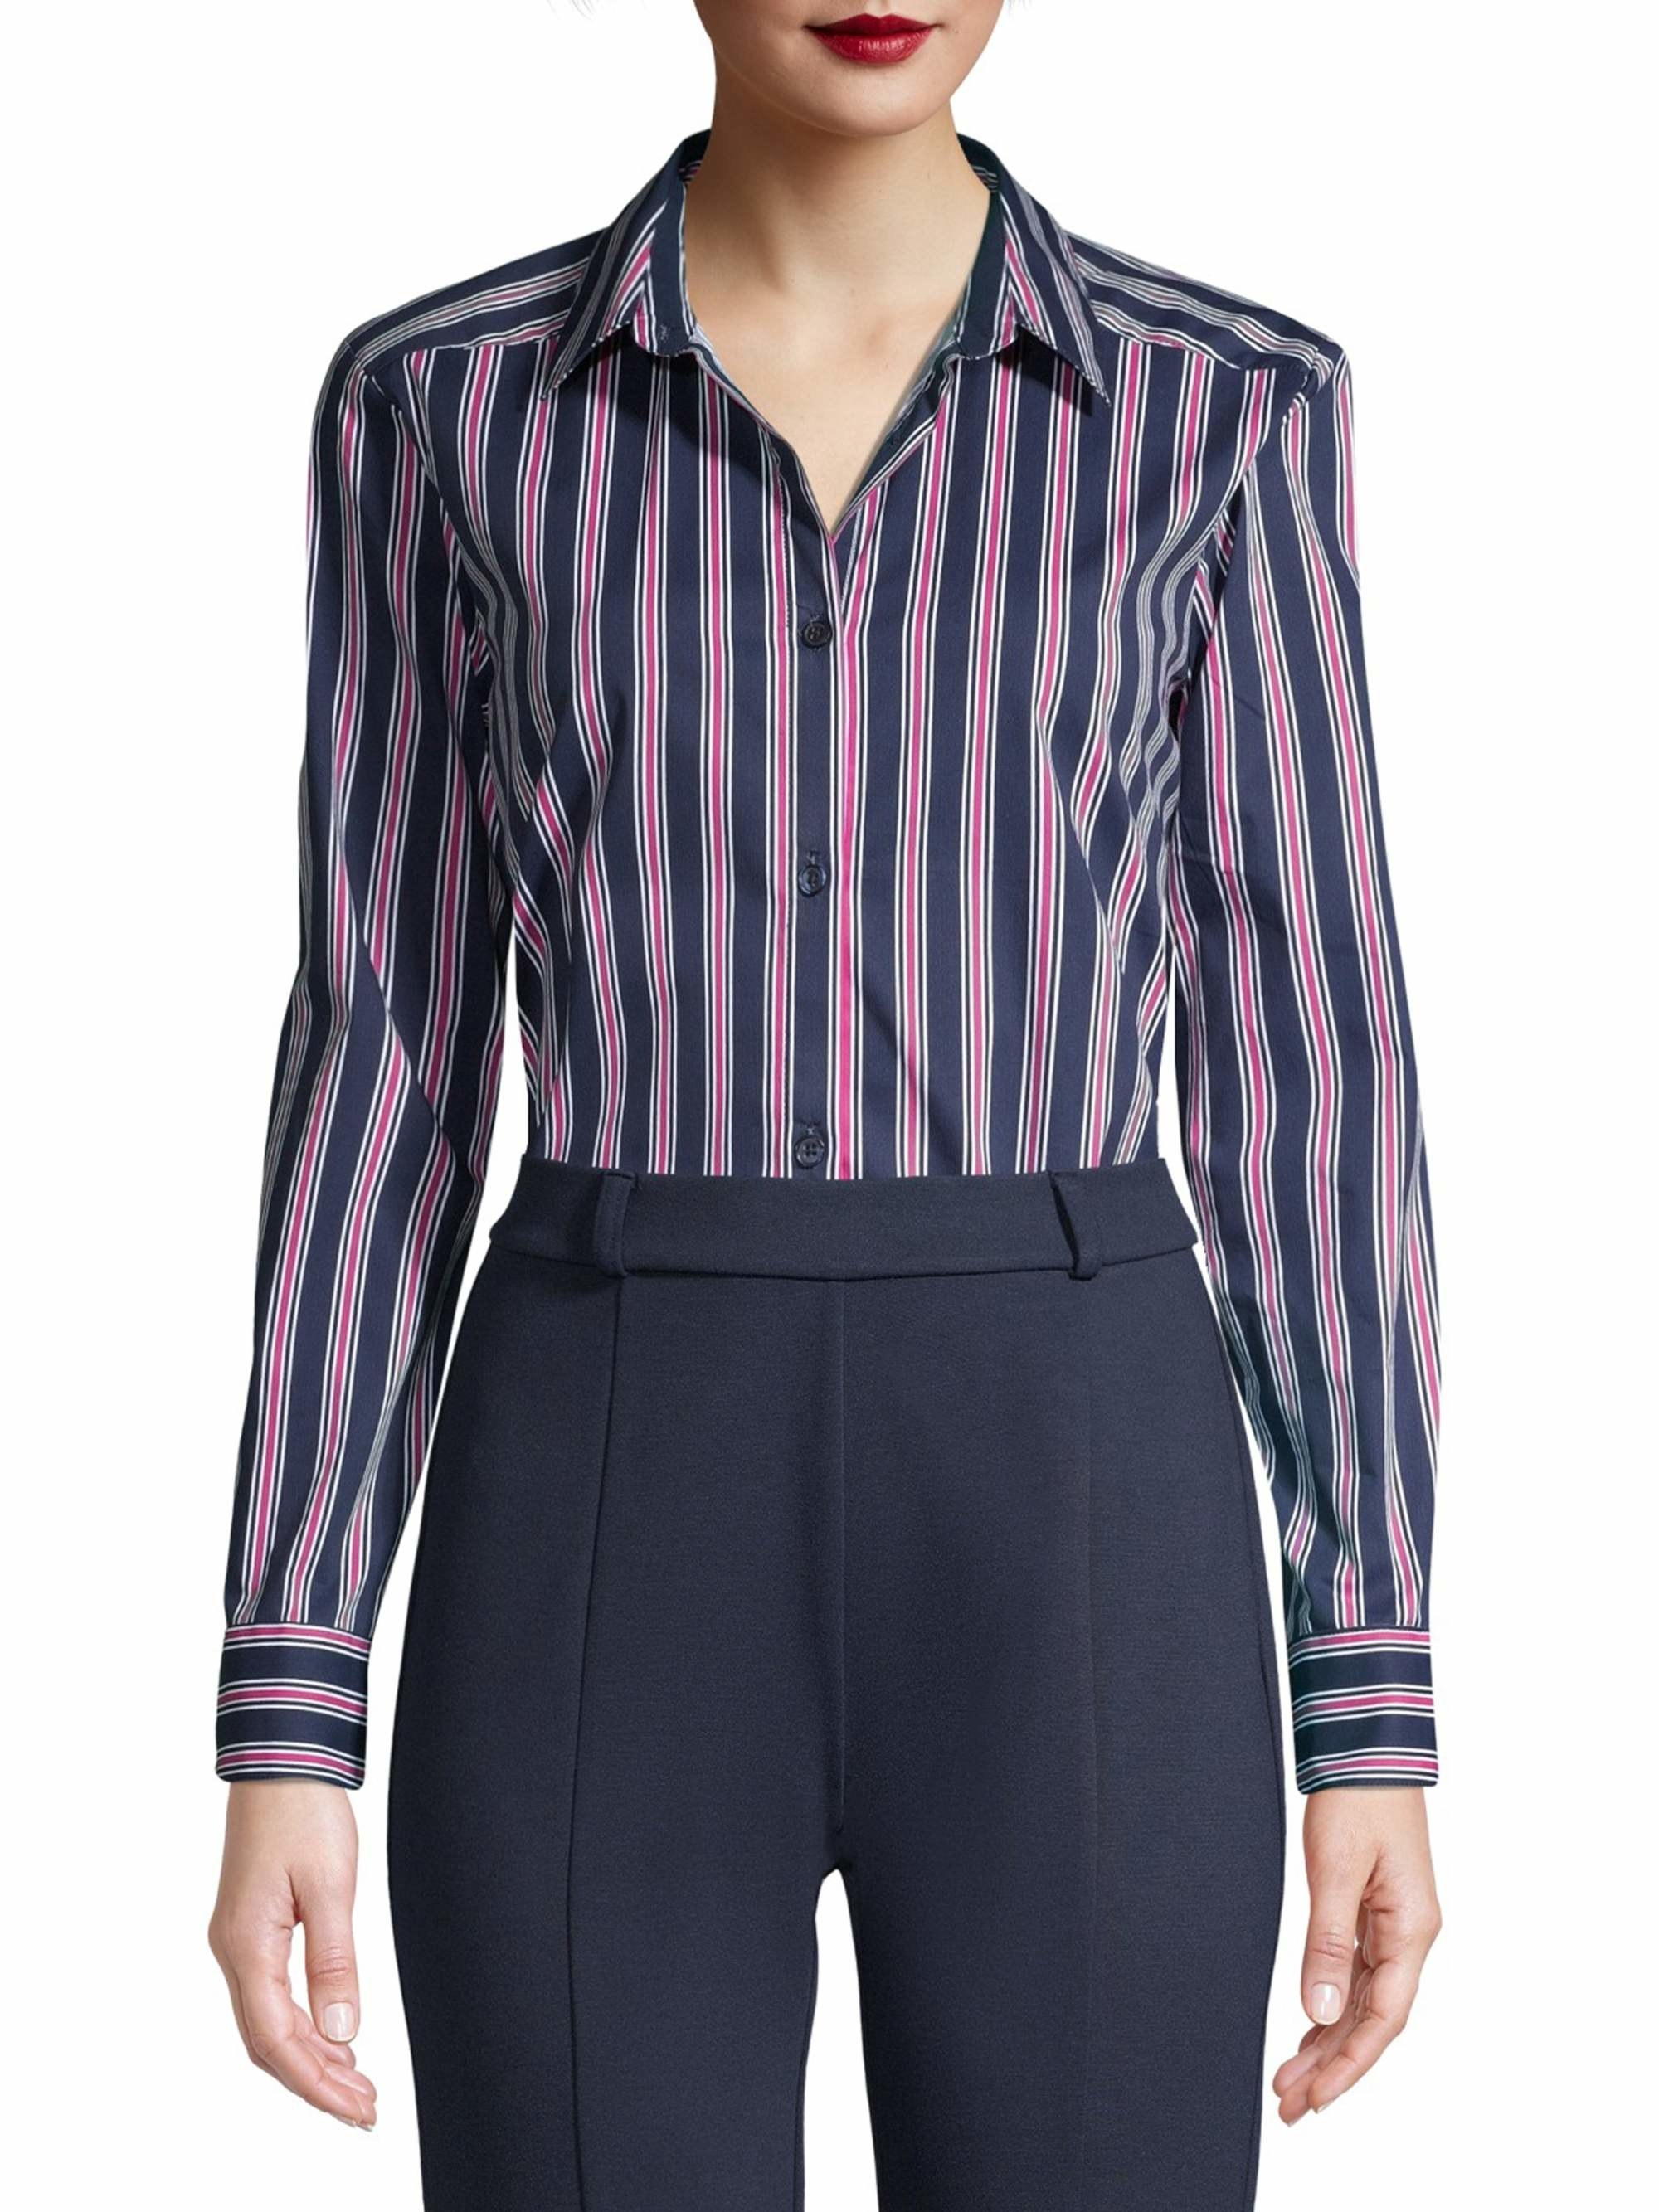 A model wearing the long-sleeve navy and hot pink striped shirt